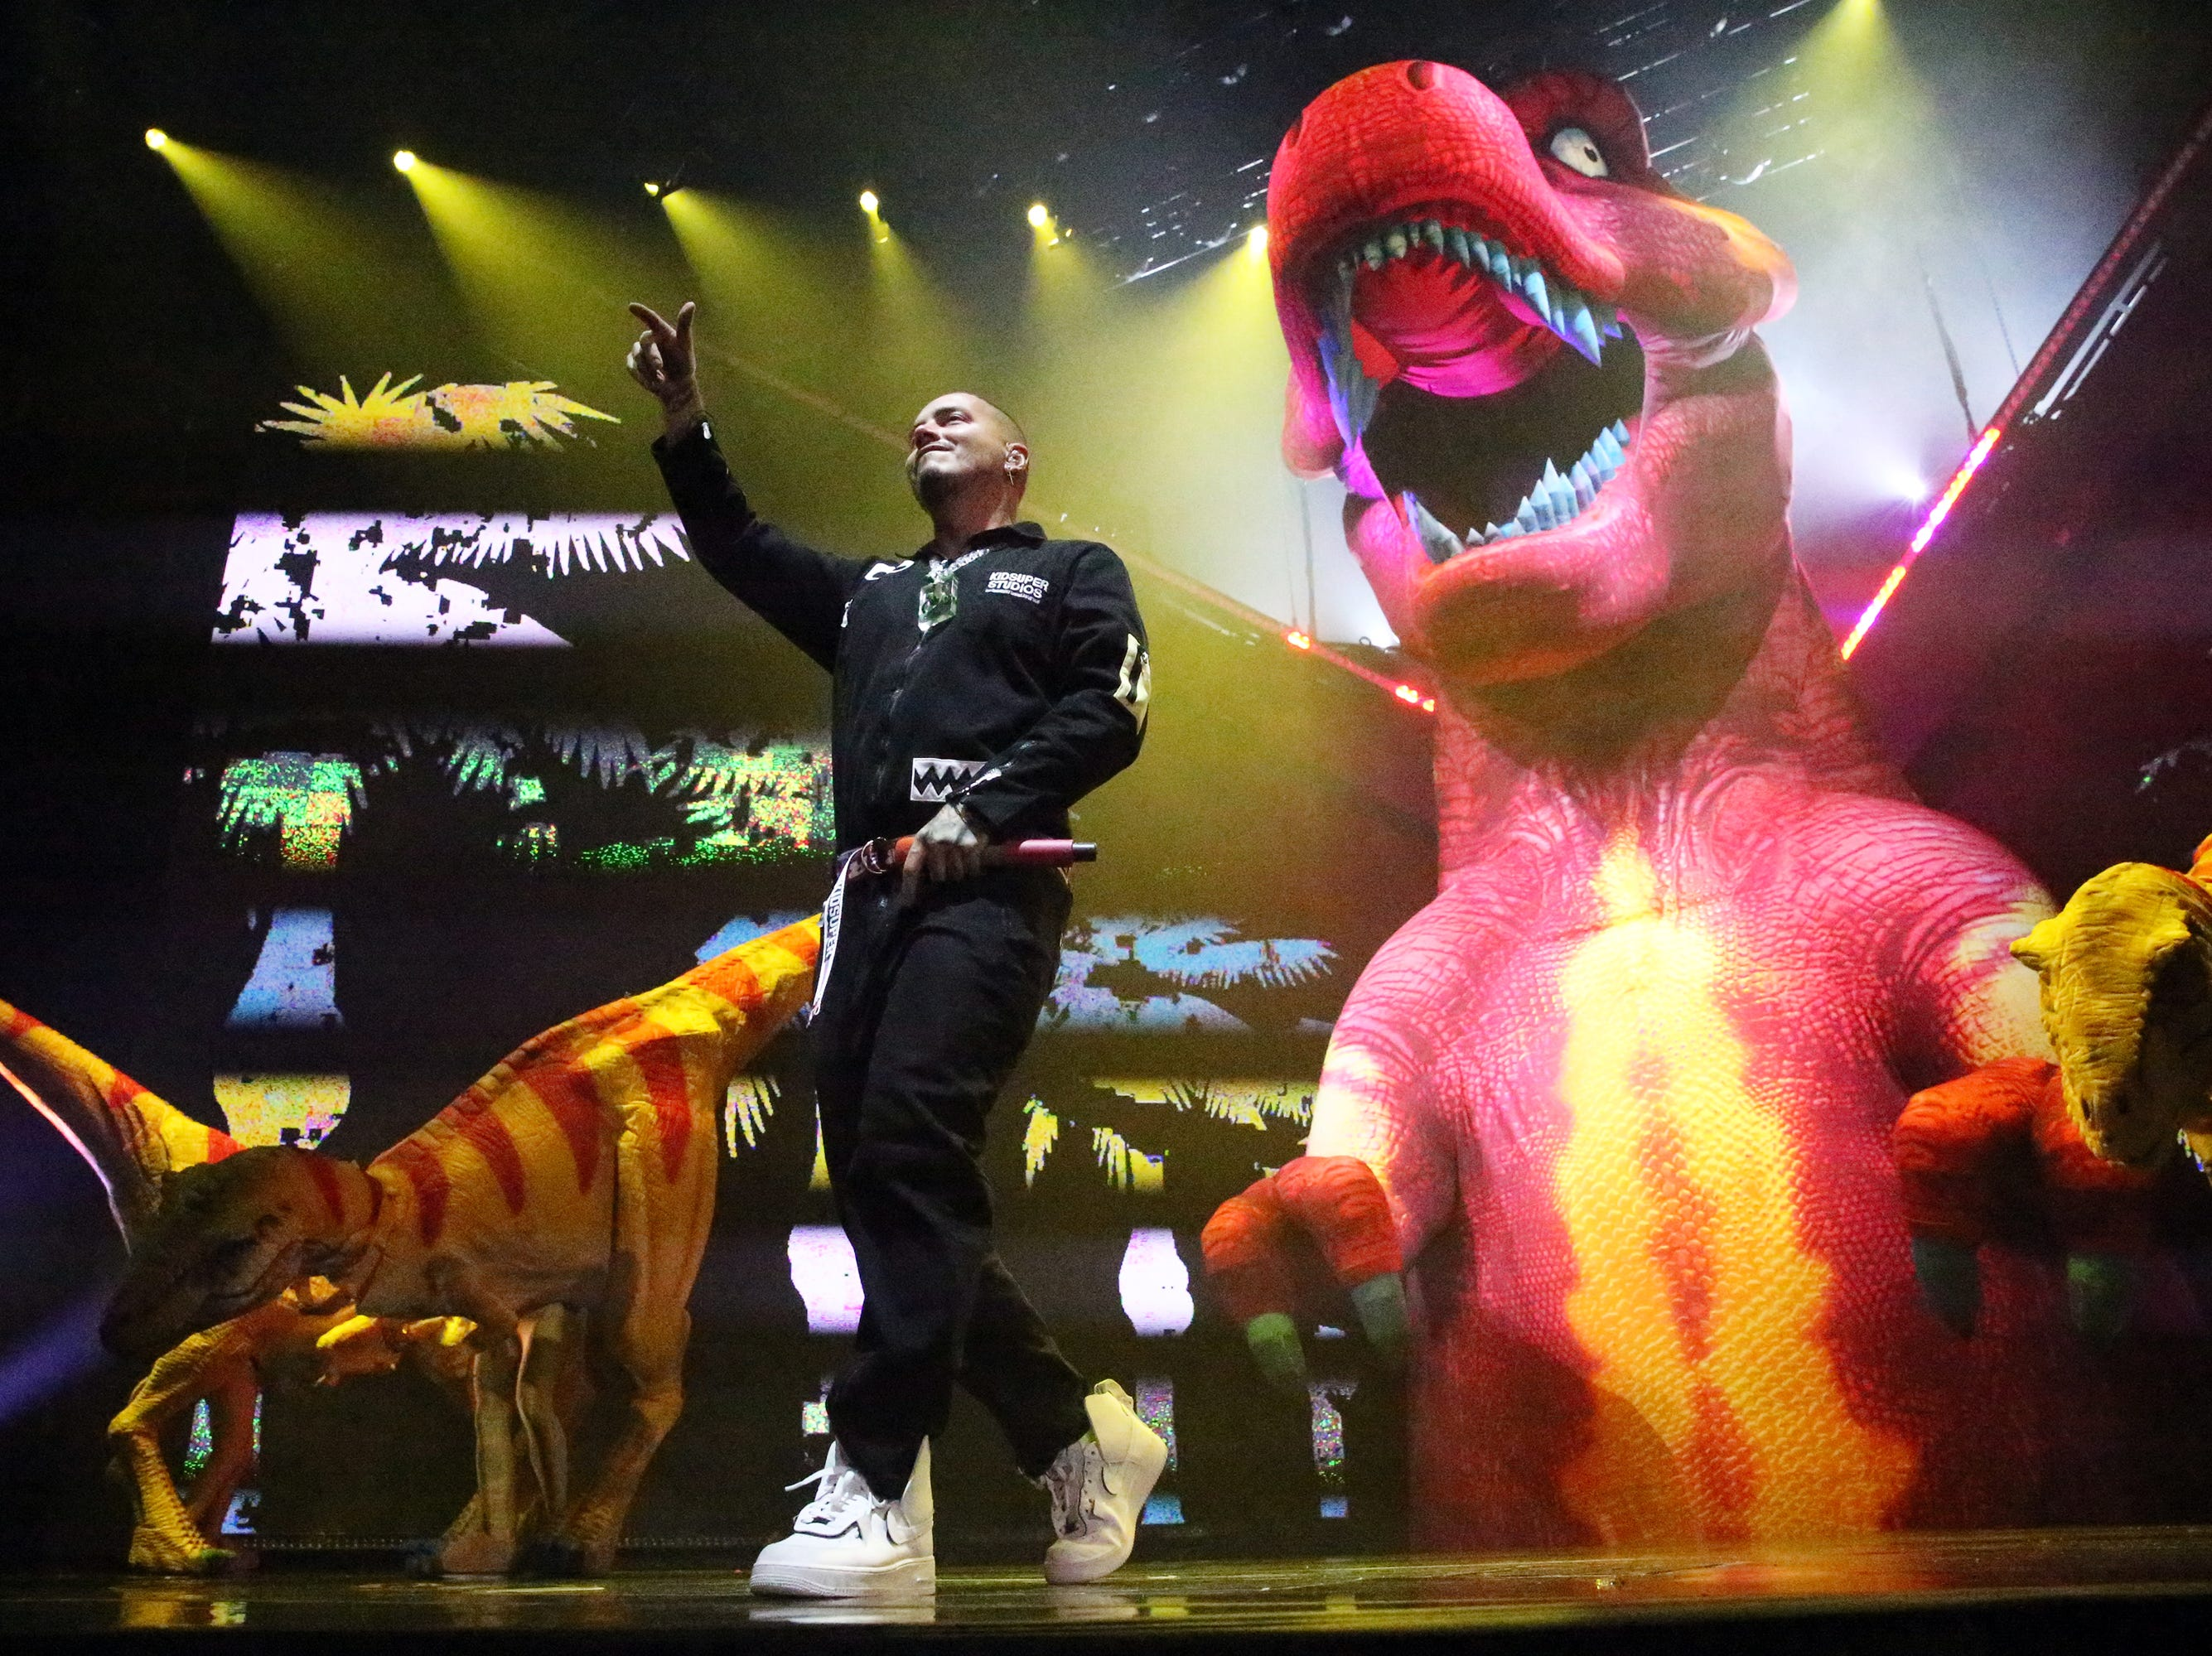 Reggaeton singer J Balvin is surrouned by dinosaurs on stage during his Sunday night,  Sept. 30 show at the Don Haskins Center. Balvin, whose real name is Jose Alvaro Osorio Balvin was on his Vibras tour 2018.